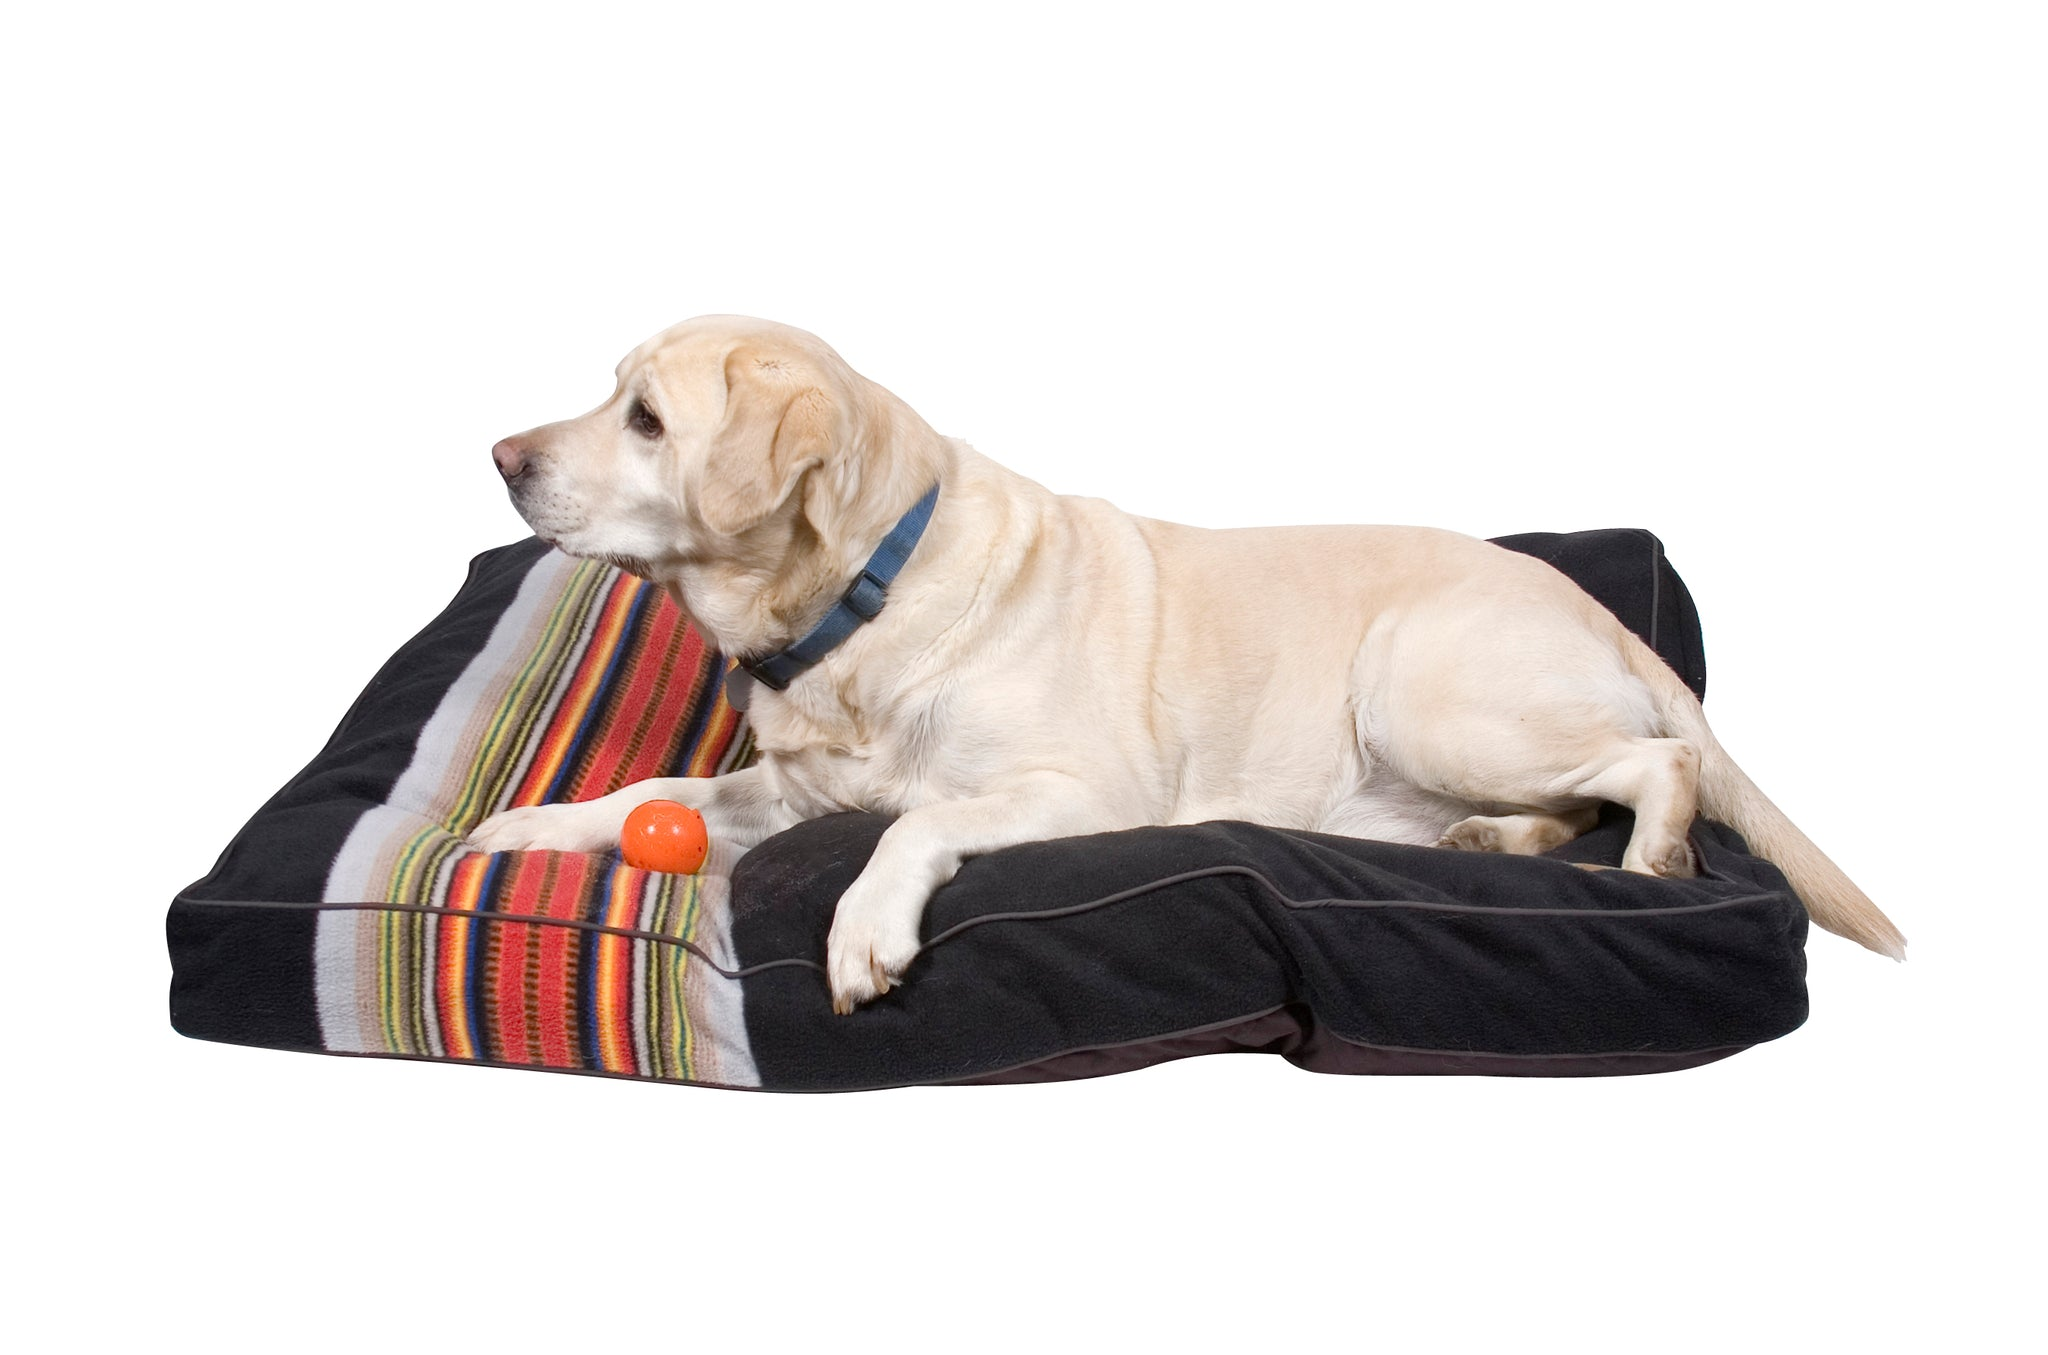 Acadia National Park Dog Bed